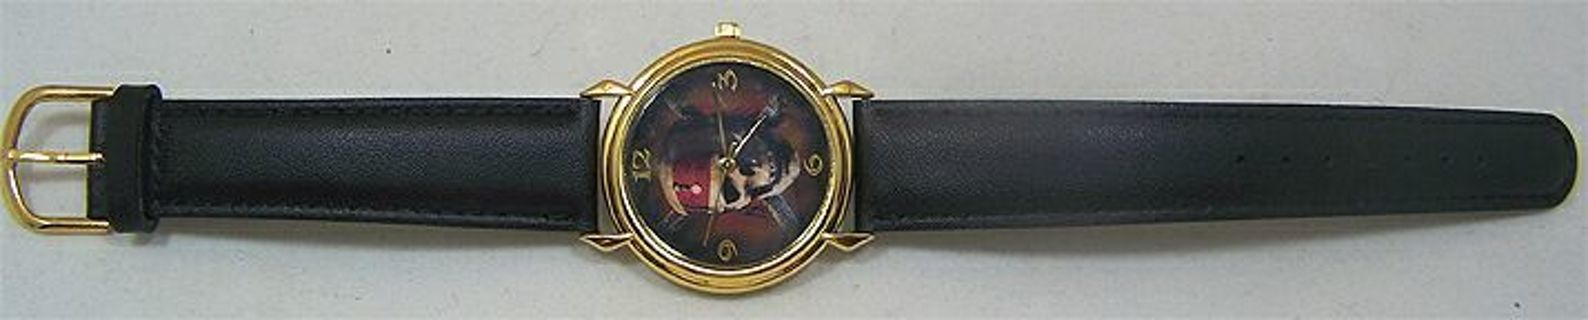 "Disney Special Edition Collector Series ""Pirates of the Caribbean"" watch 2011"